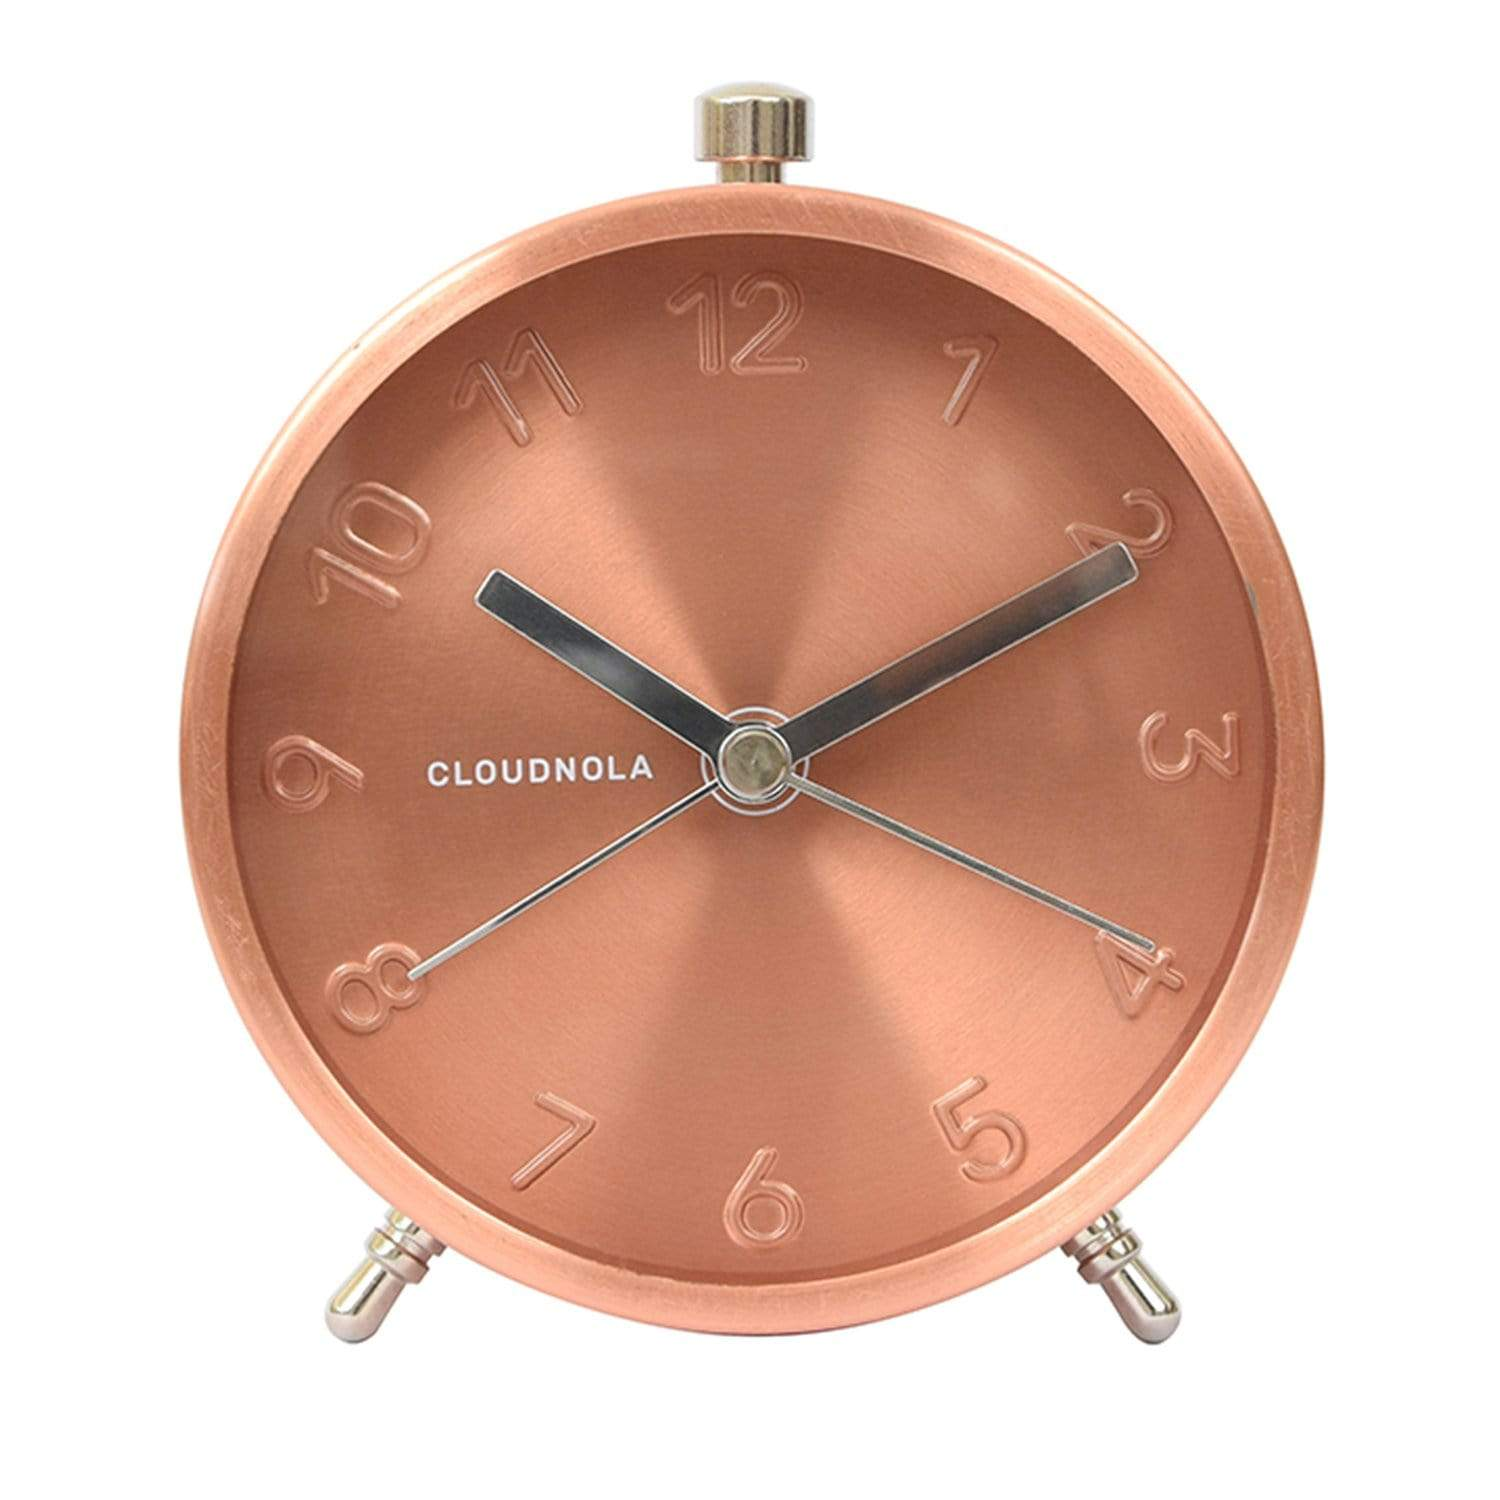 cloudnola Wall Clock Glam Copper Alarm Clock